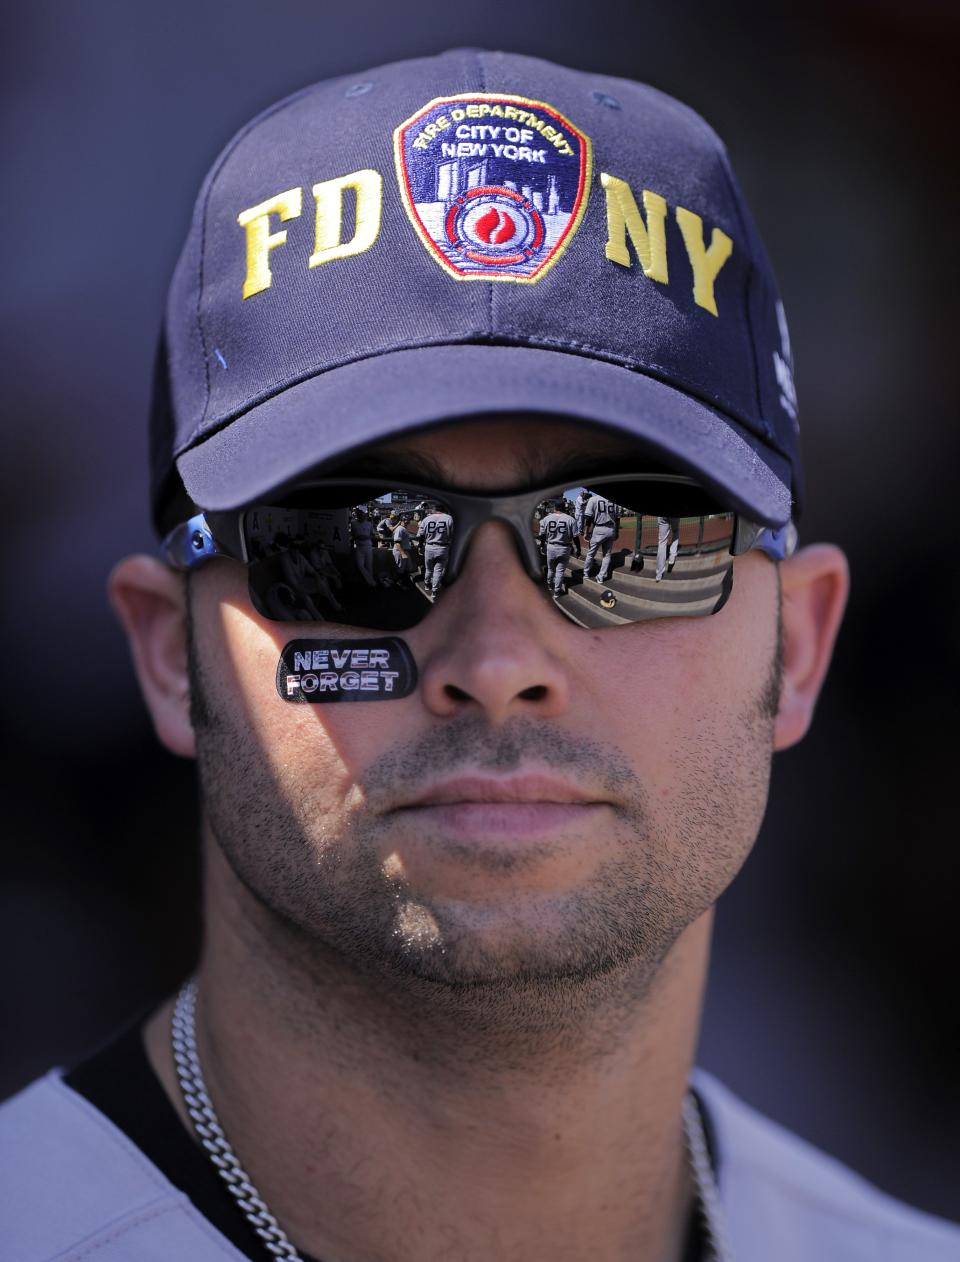 New York Yankees right fielder Nick Swisher wears a FDNY hat prior to a ceremony to commemorate the 9/11 anniversary prior to the Yankees baseball game against the Los Angeles Angels, Sunday, Sept. 11, 2011, in Anaheim, Calif. (AP Photo/Mark J. Terrill)